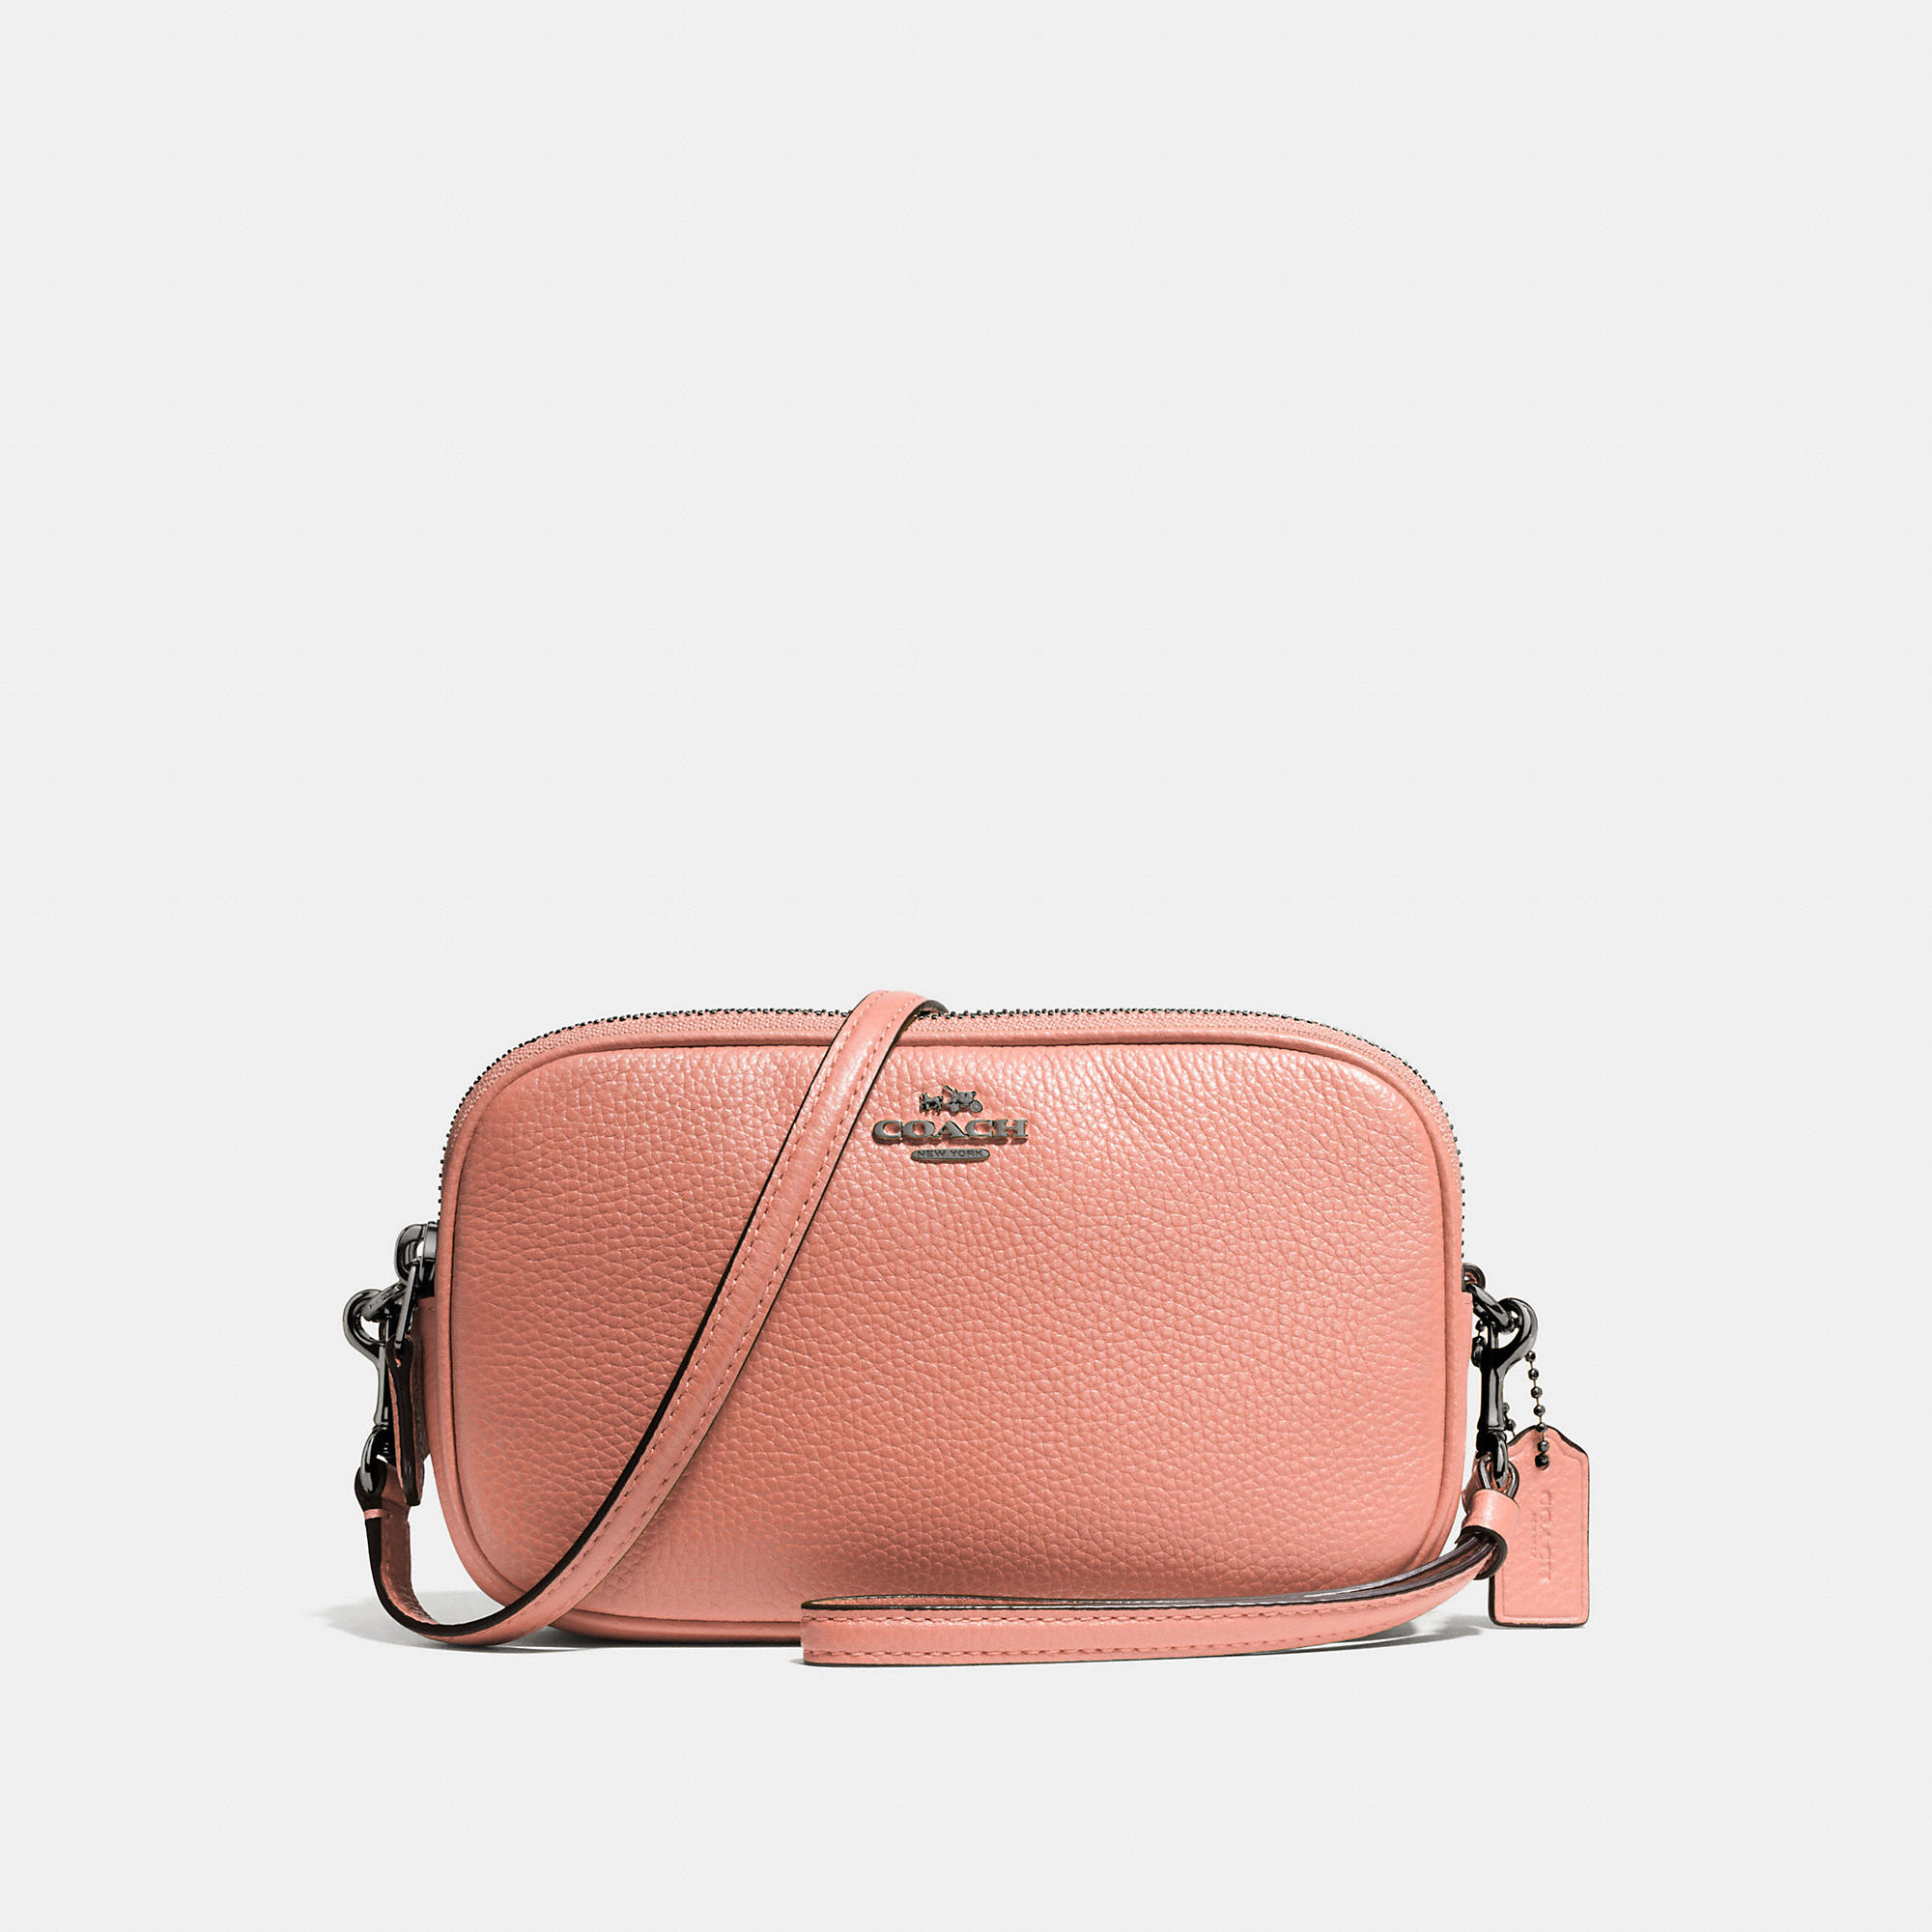 Coach Crossbody Clutch